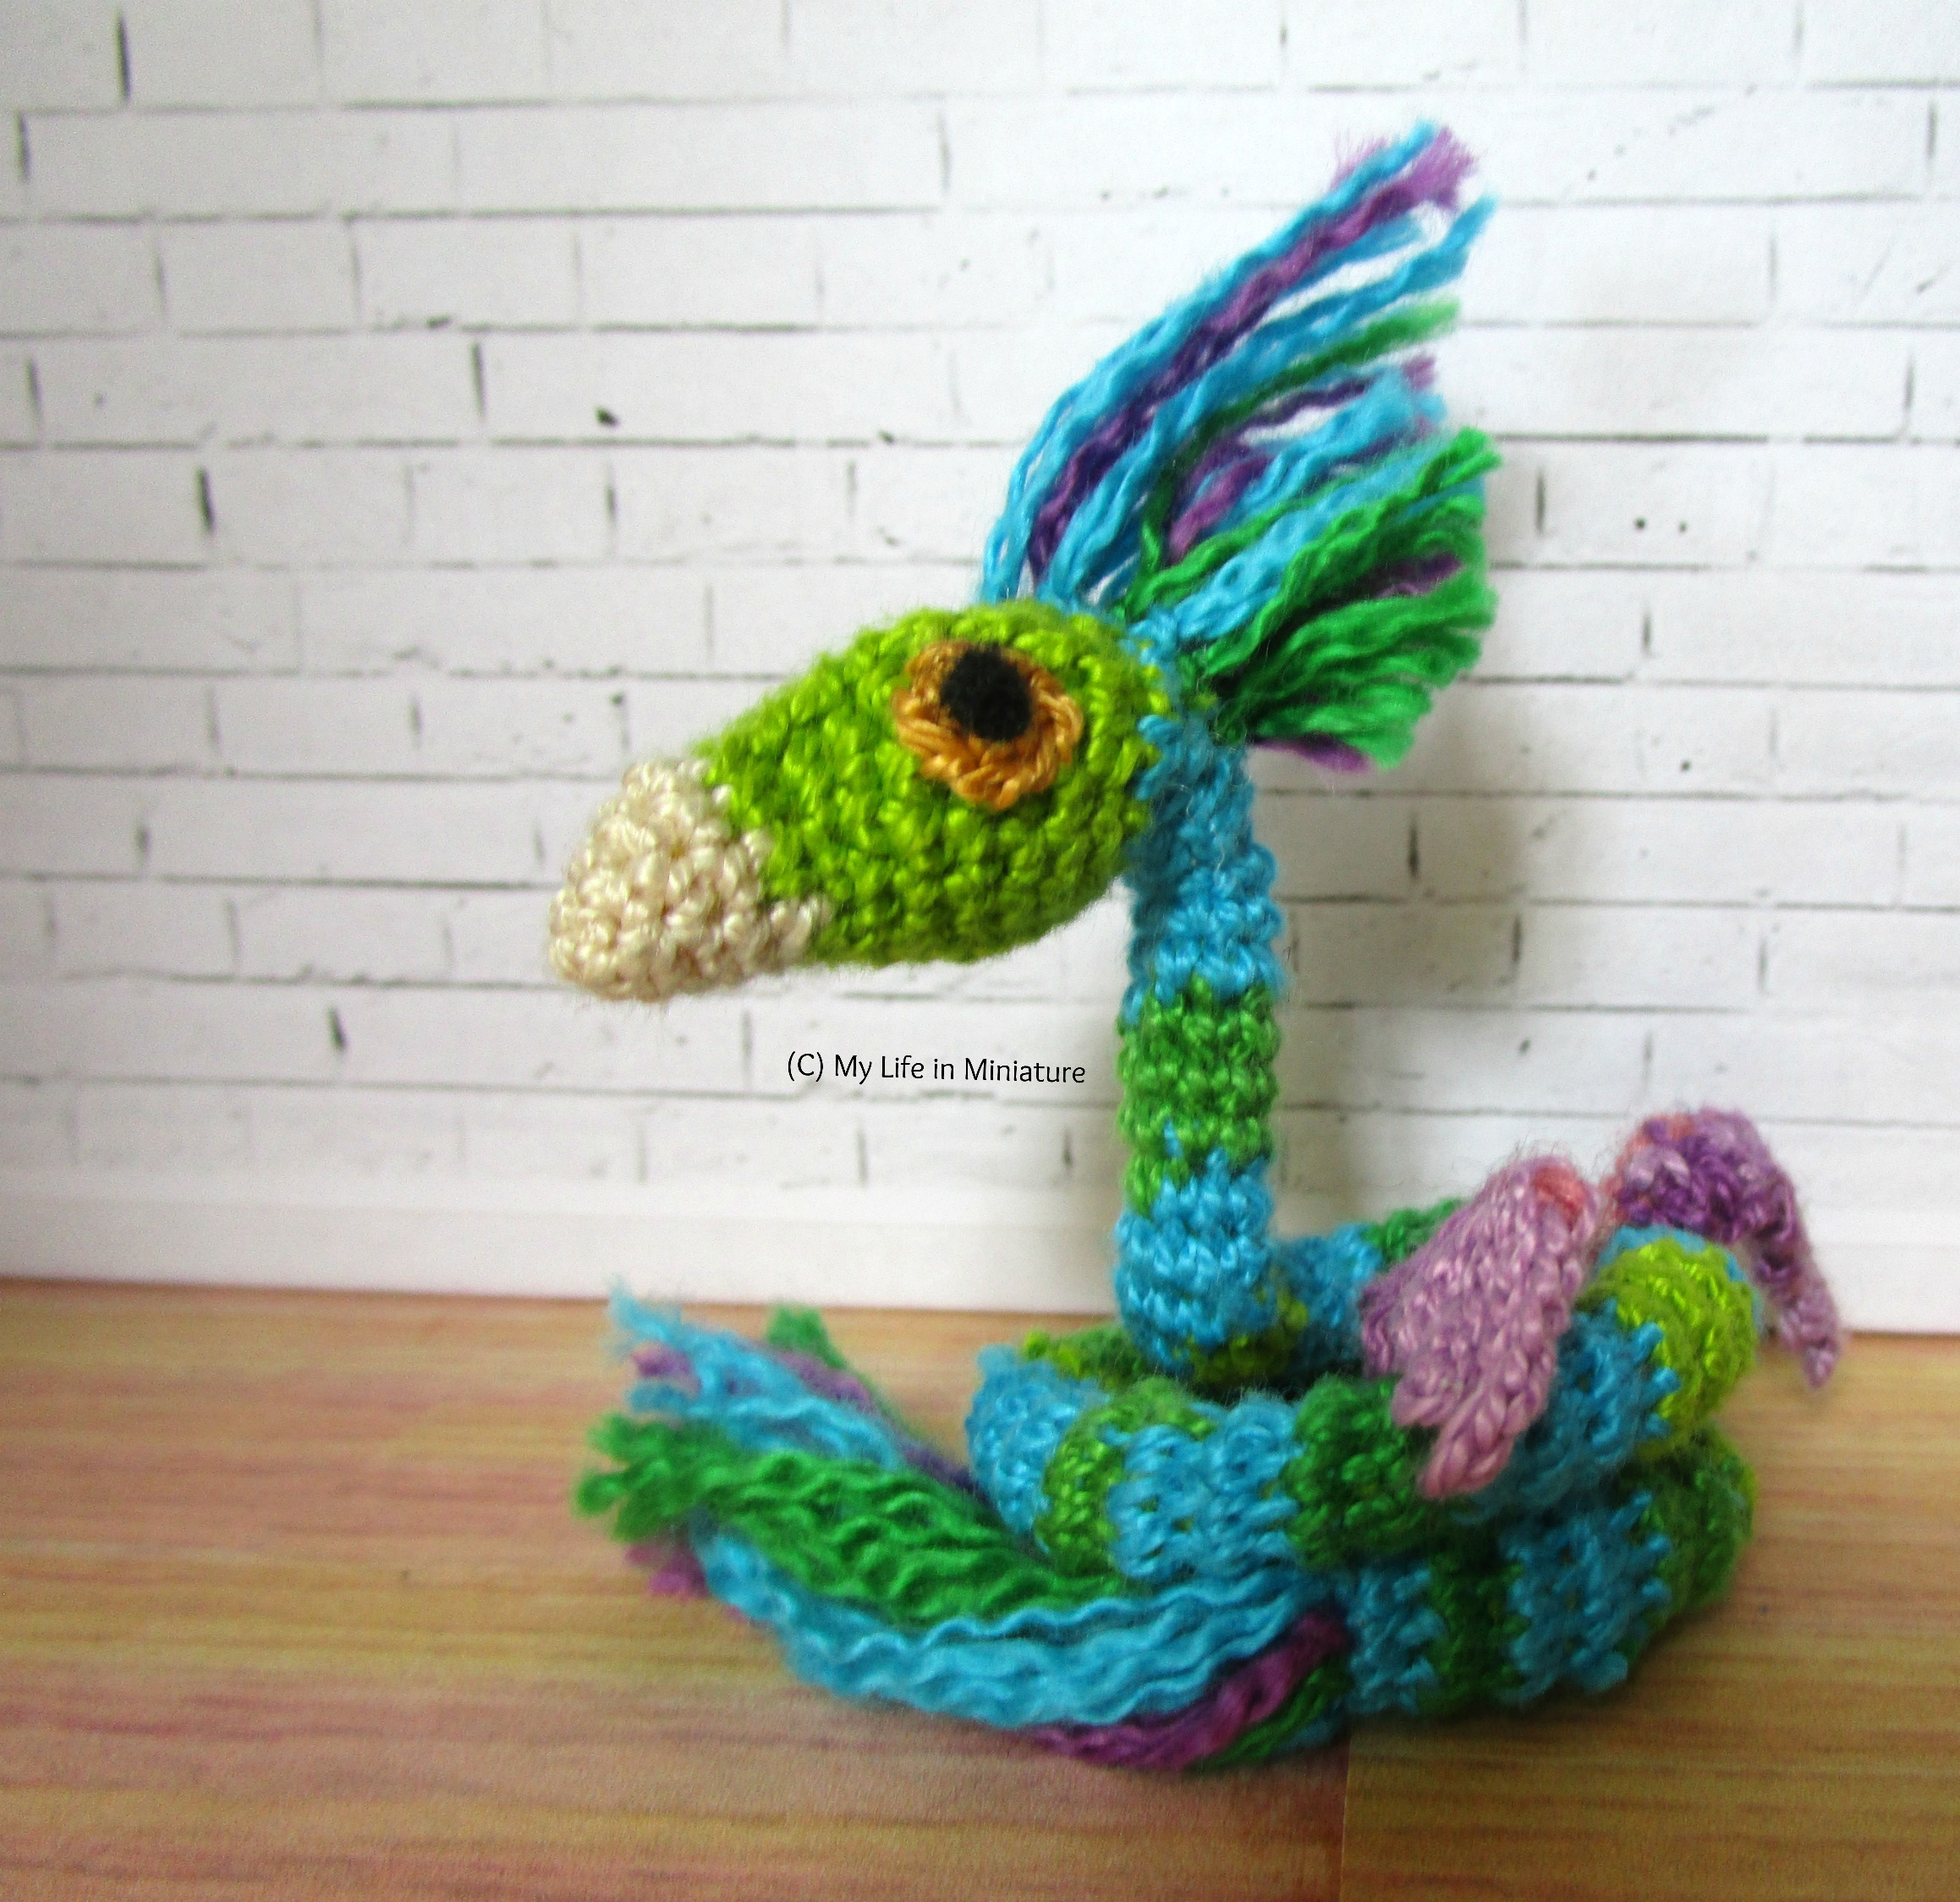 A crocheted Occamy (a mythical snake/bird creature from Fantastic Beasts and Where to Find Them) sits in front of a white brick background. It has little purple wings, a green-and-blue body and a green, blue, and purple crest on its head.